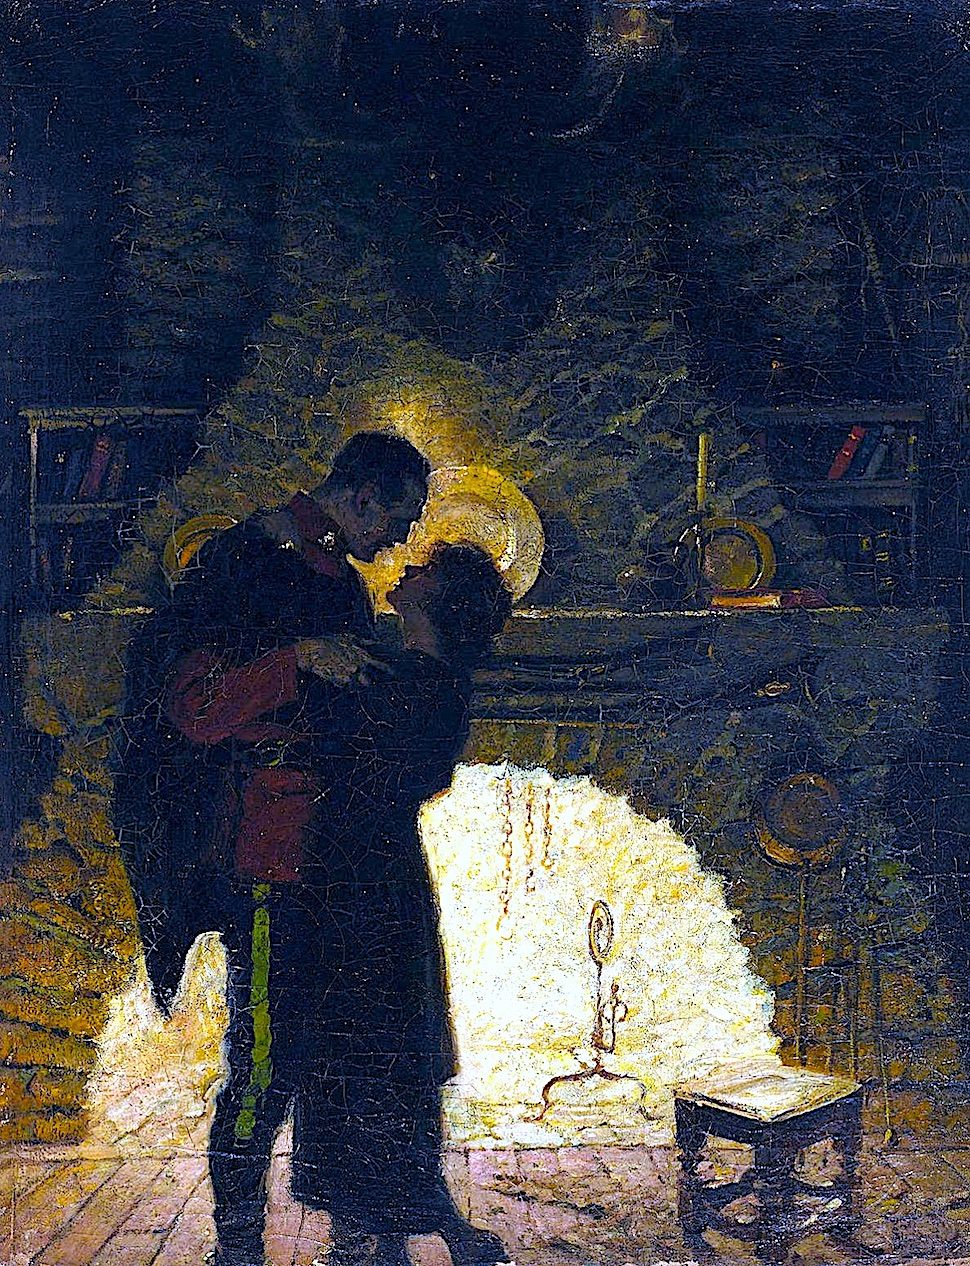 a Dean Cornwell illustration of a military officer kissing a woman in front of a burning fireplace